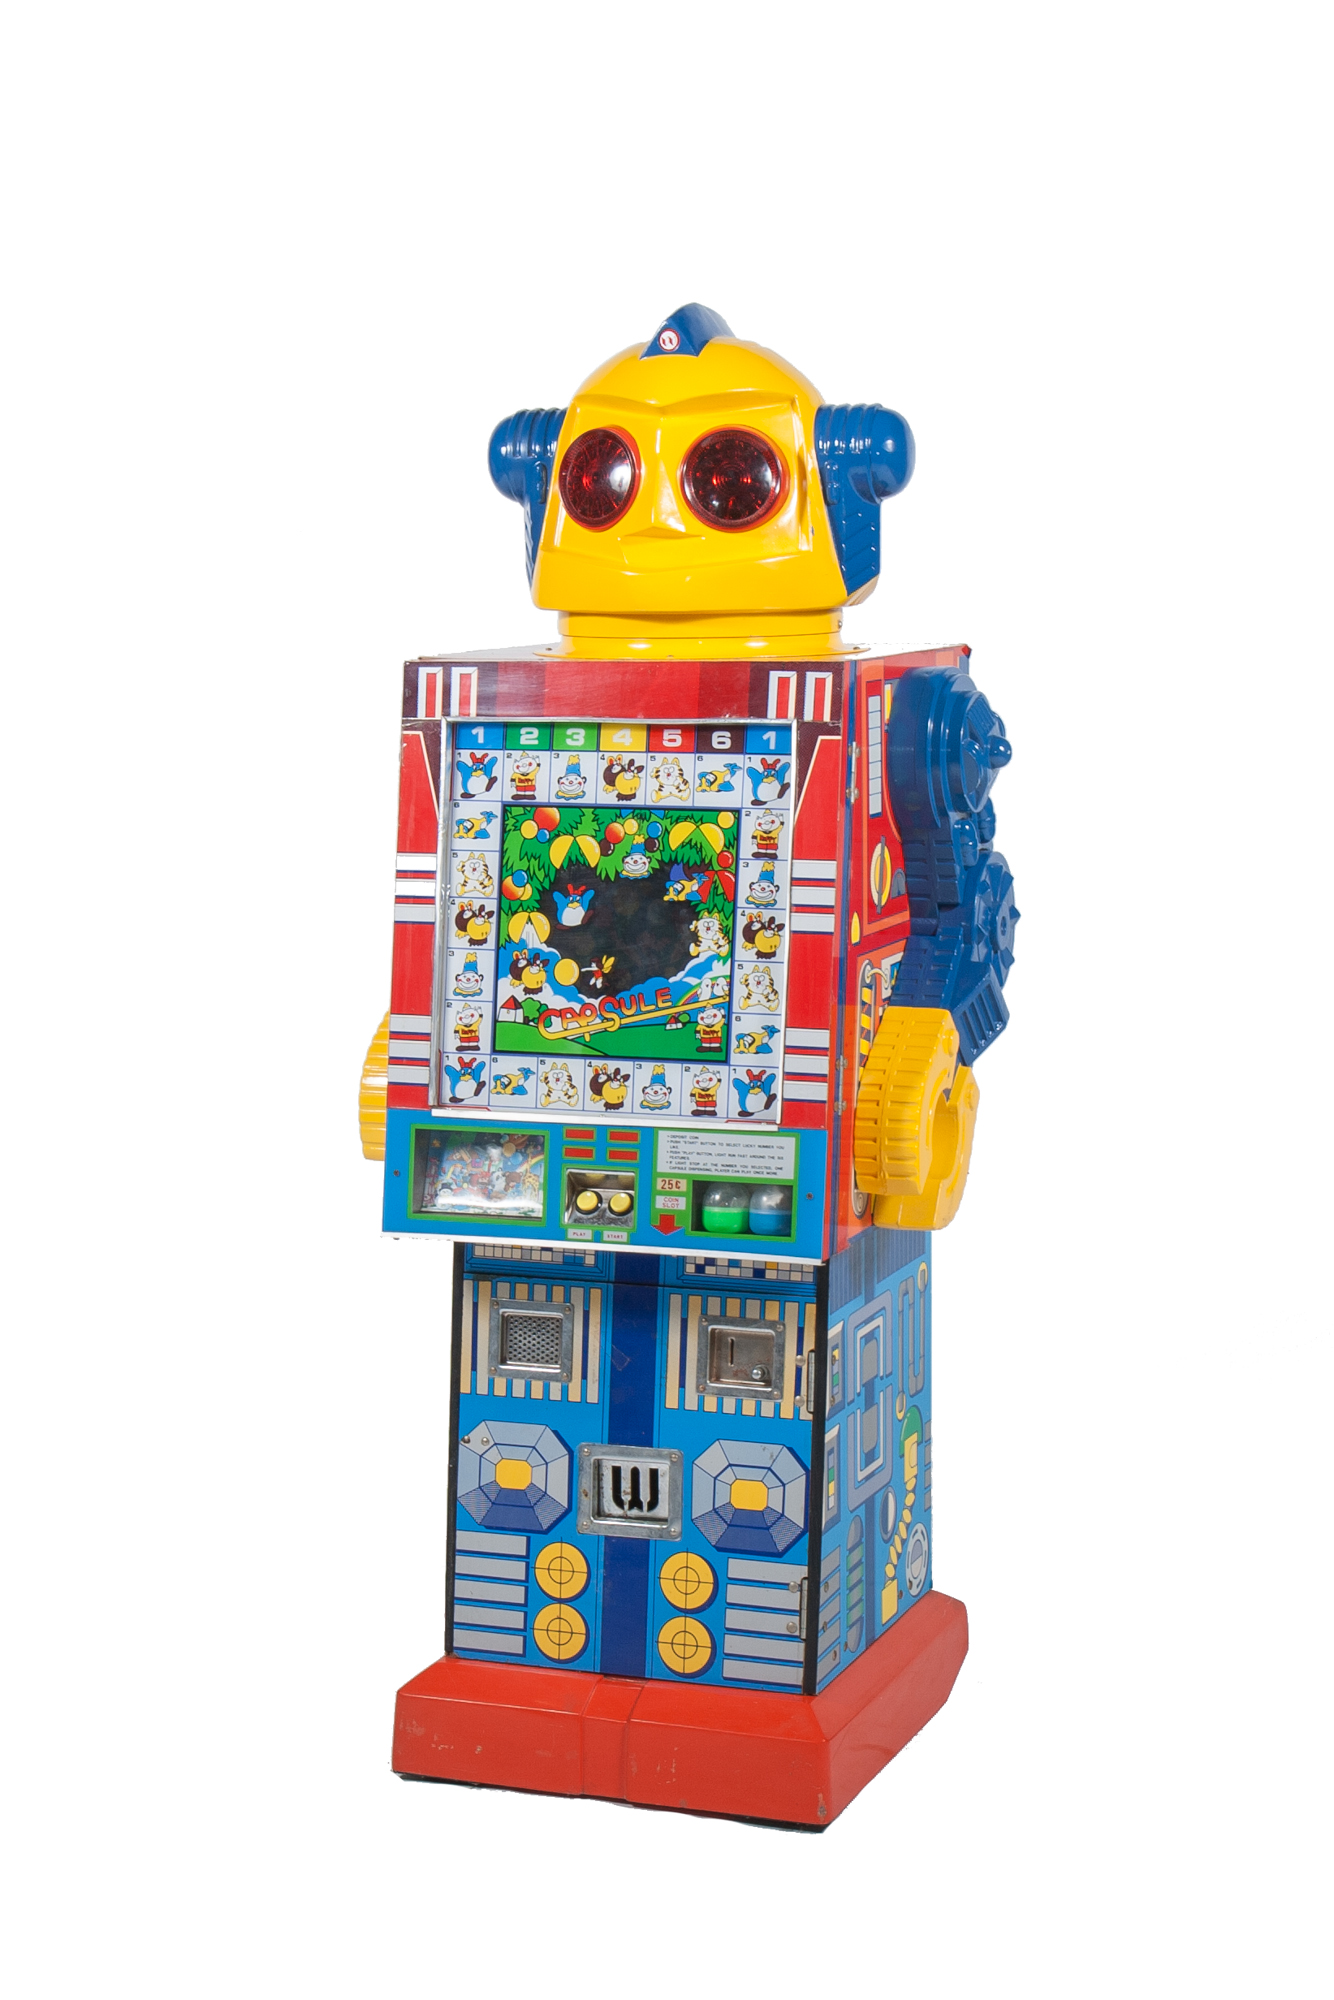 Vending Machine – Transformer-Style Robot (1985) - Height 4'10""